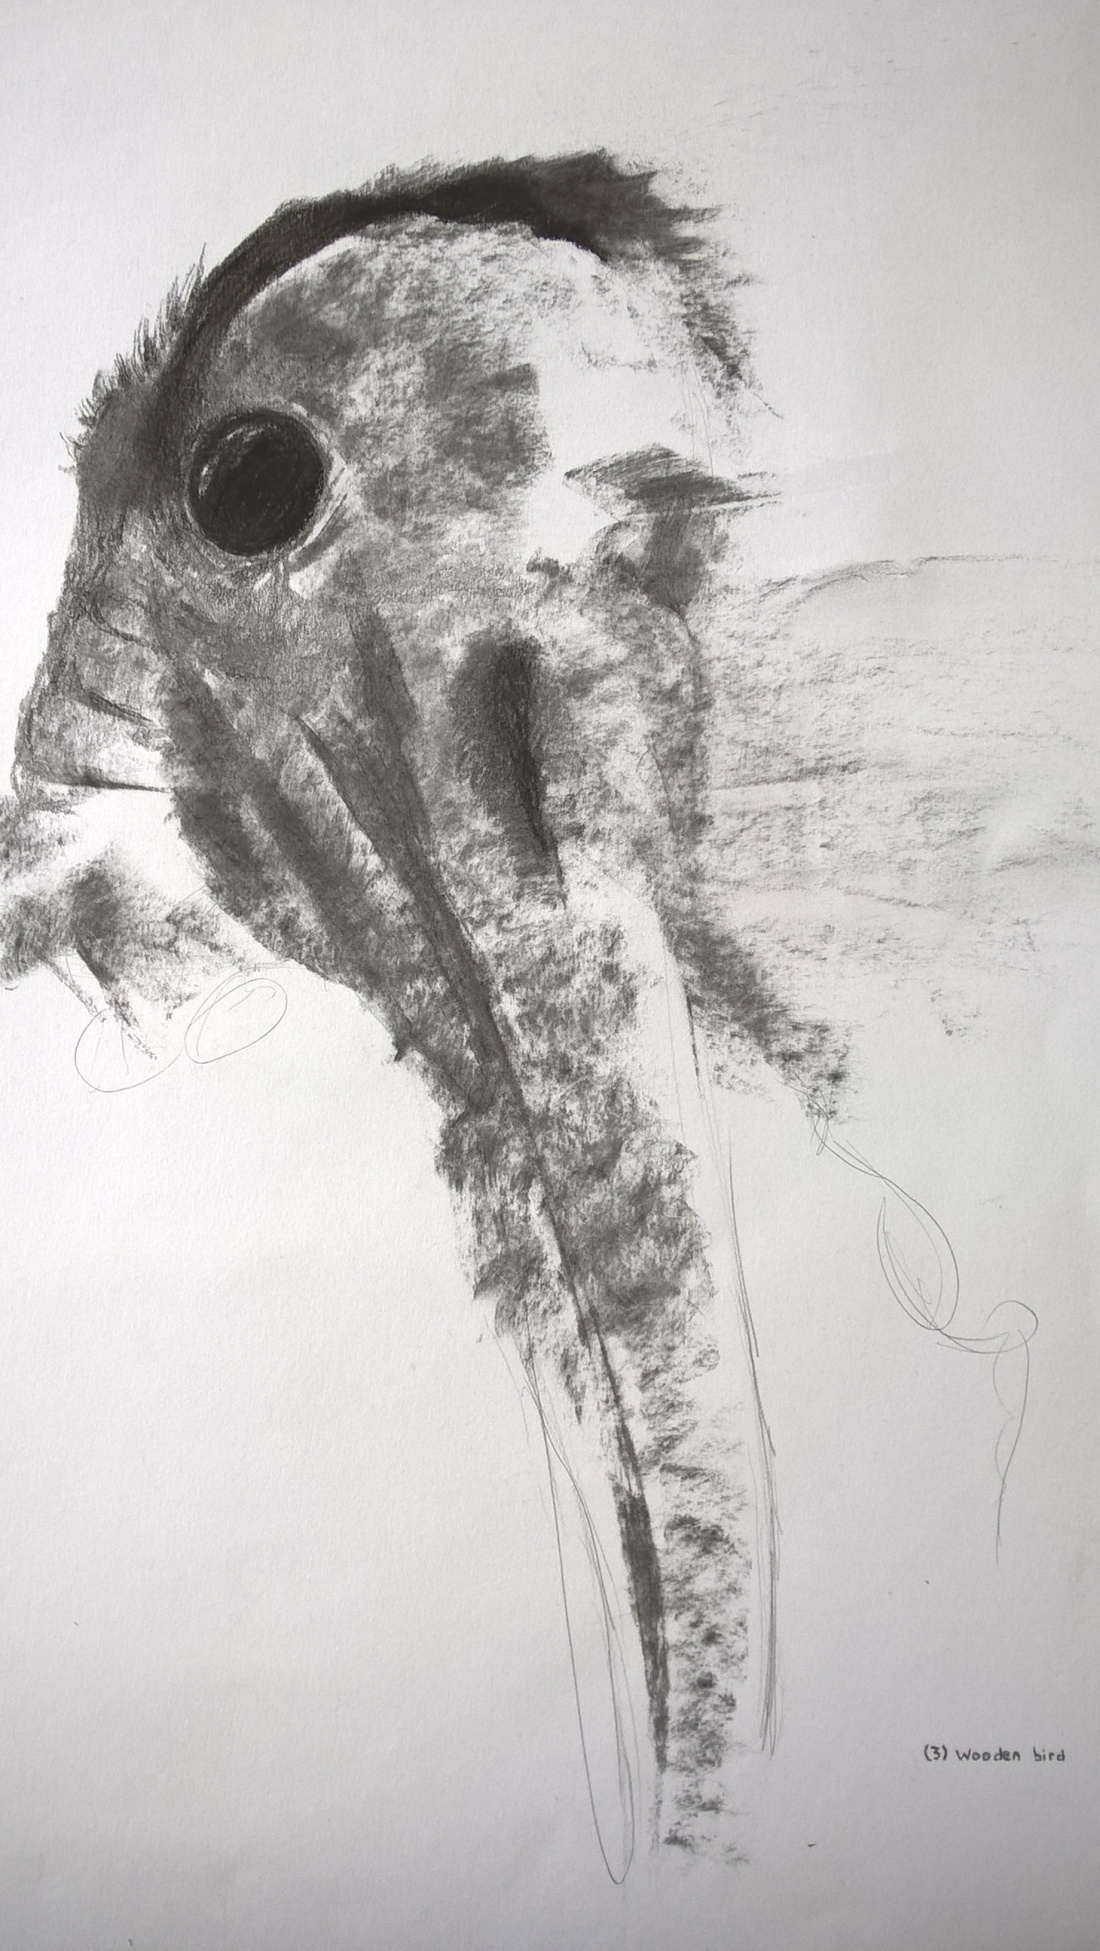 Unfinished - charcoal - bird drawing on A3 paper